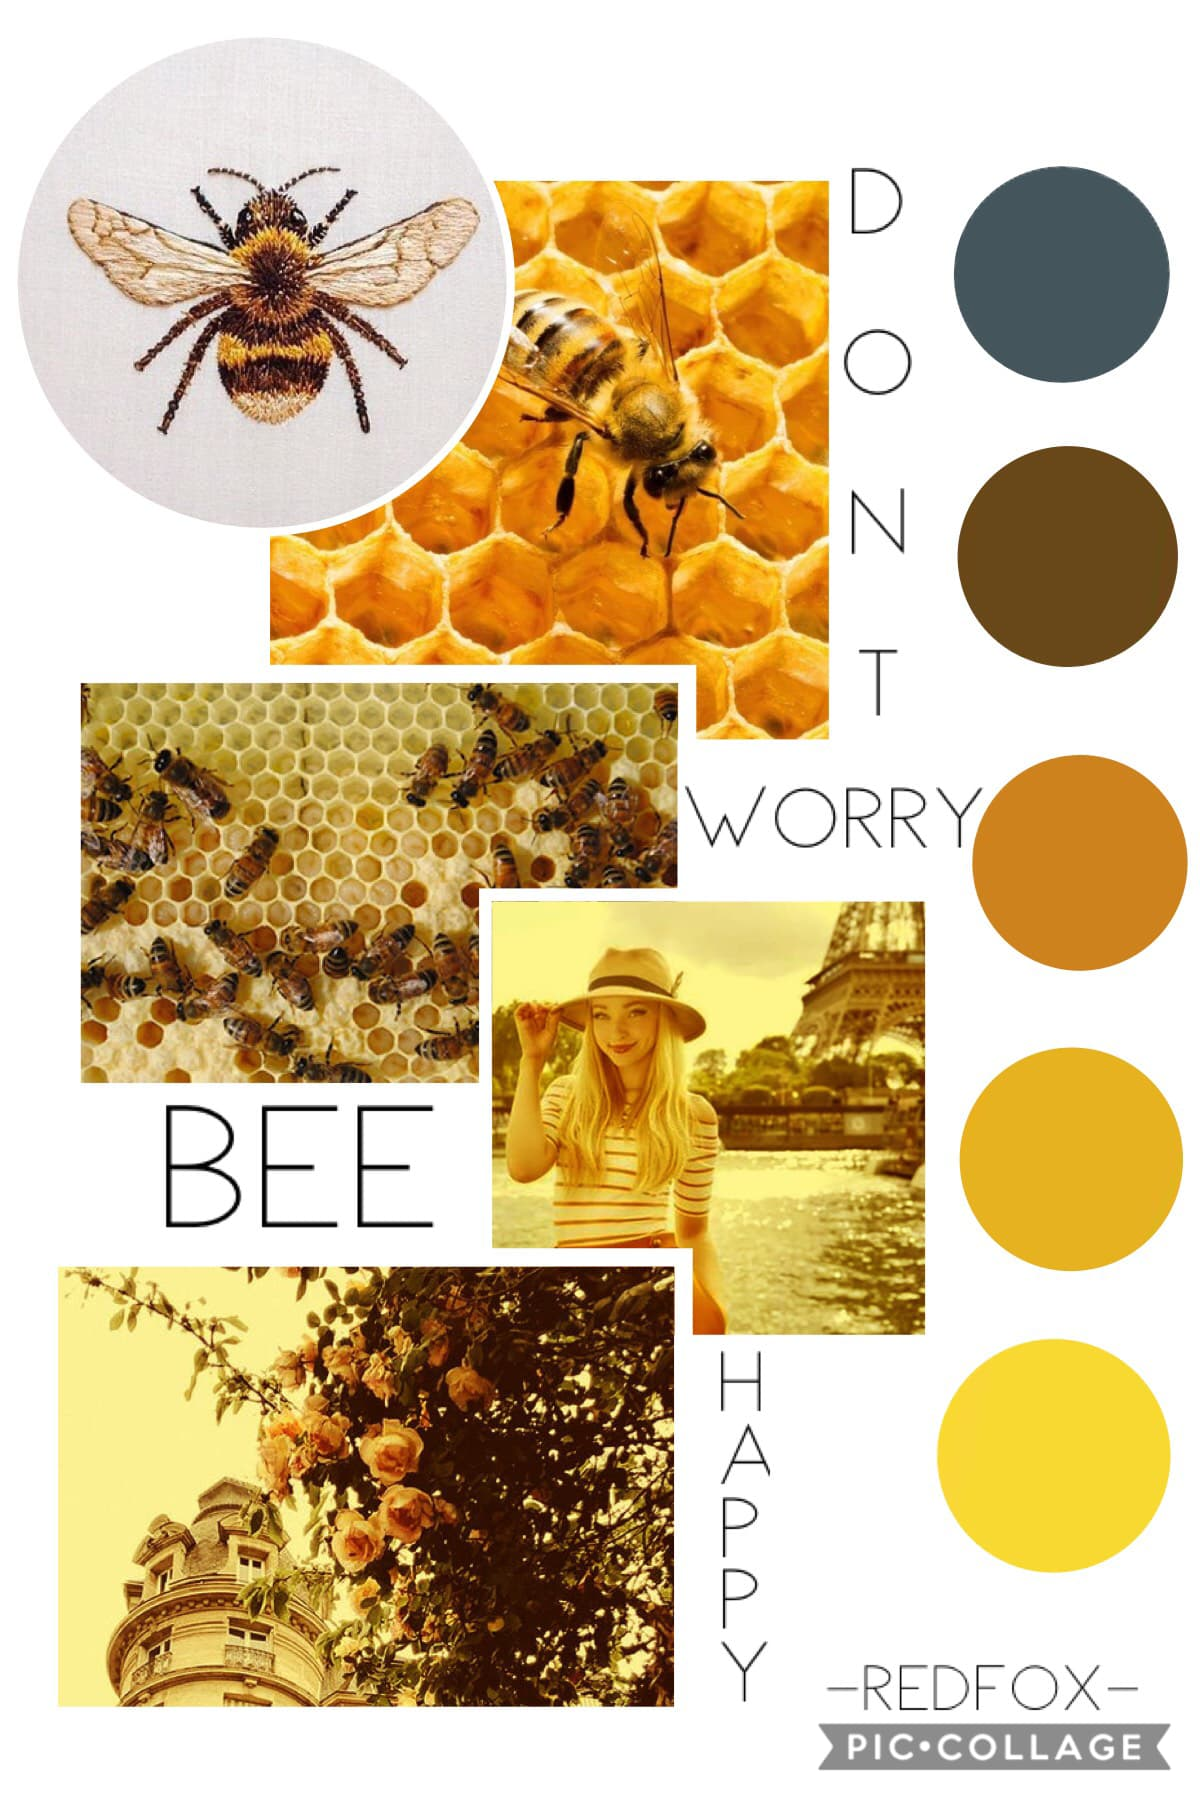 🐝t a p p i t y  t a p🐝  This is one of my fave collages I've ever done!!!!! Please let me know what you think!! I'm so happy with the way this turned out!!!!! 💛🖤💛🖤💛